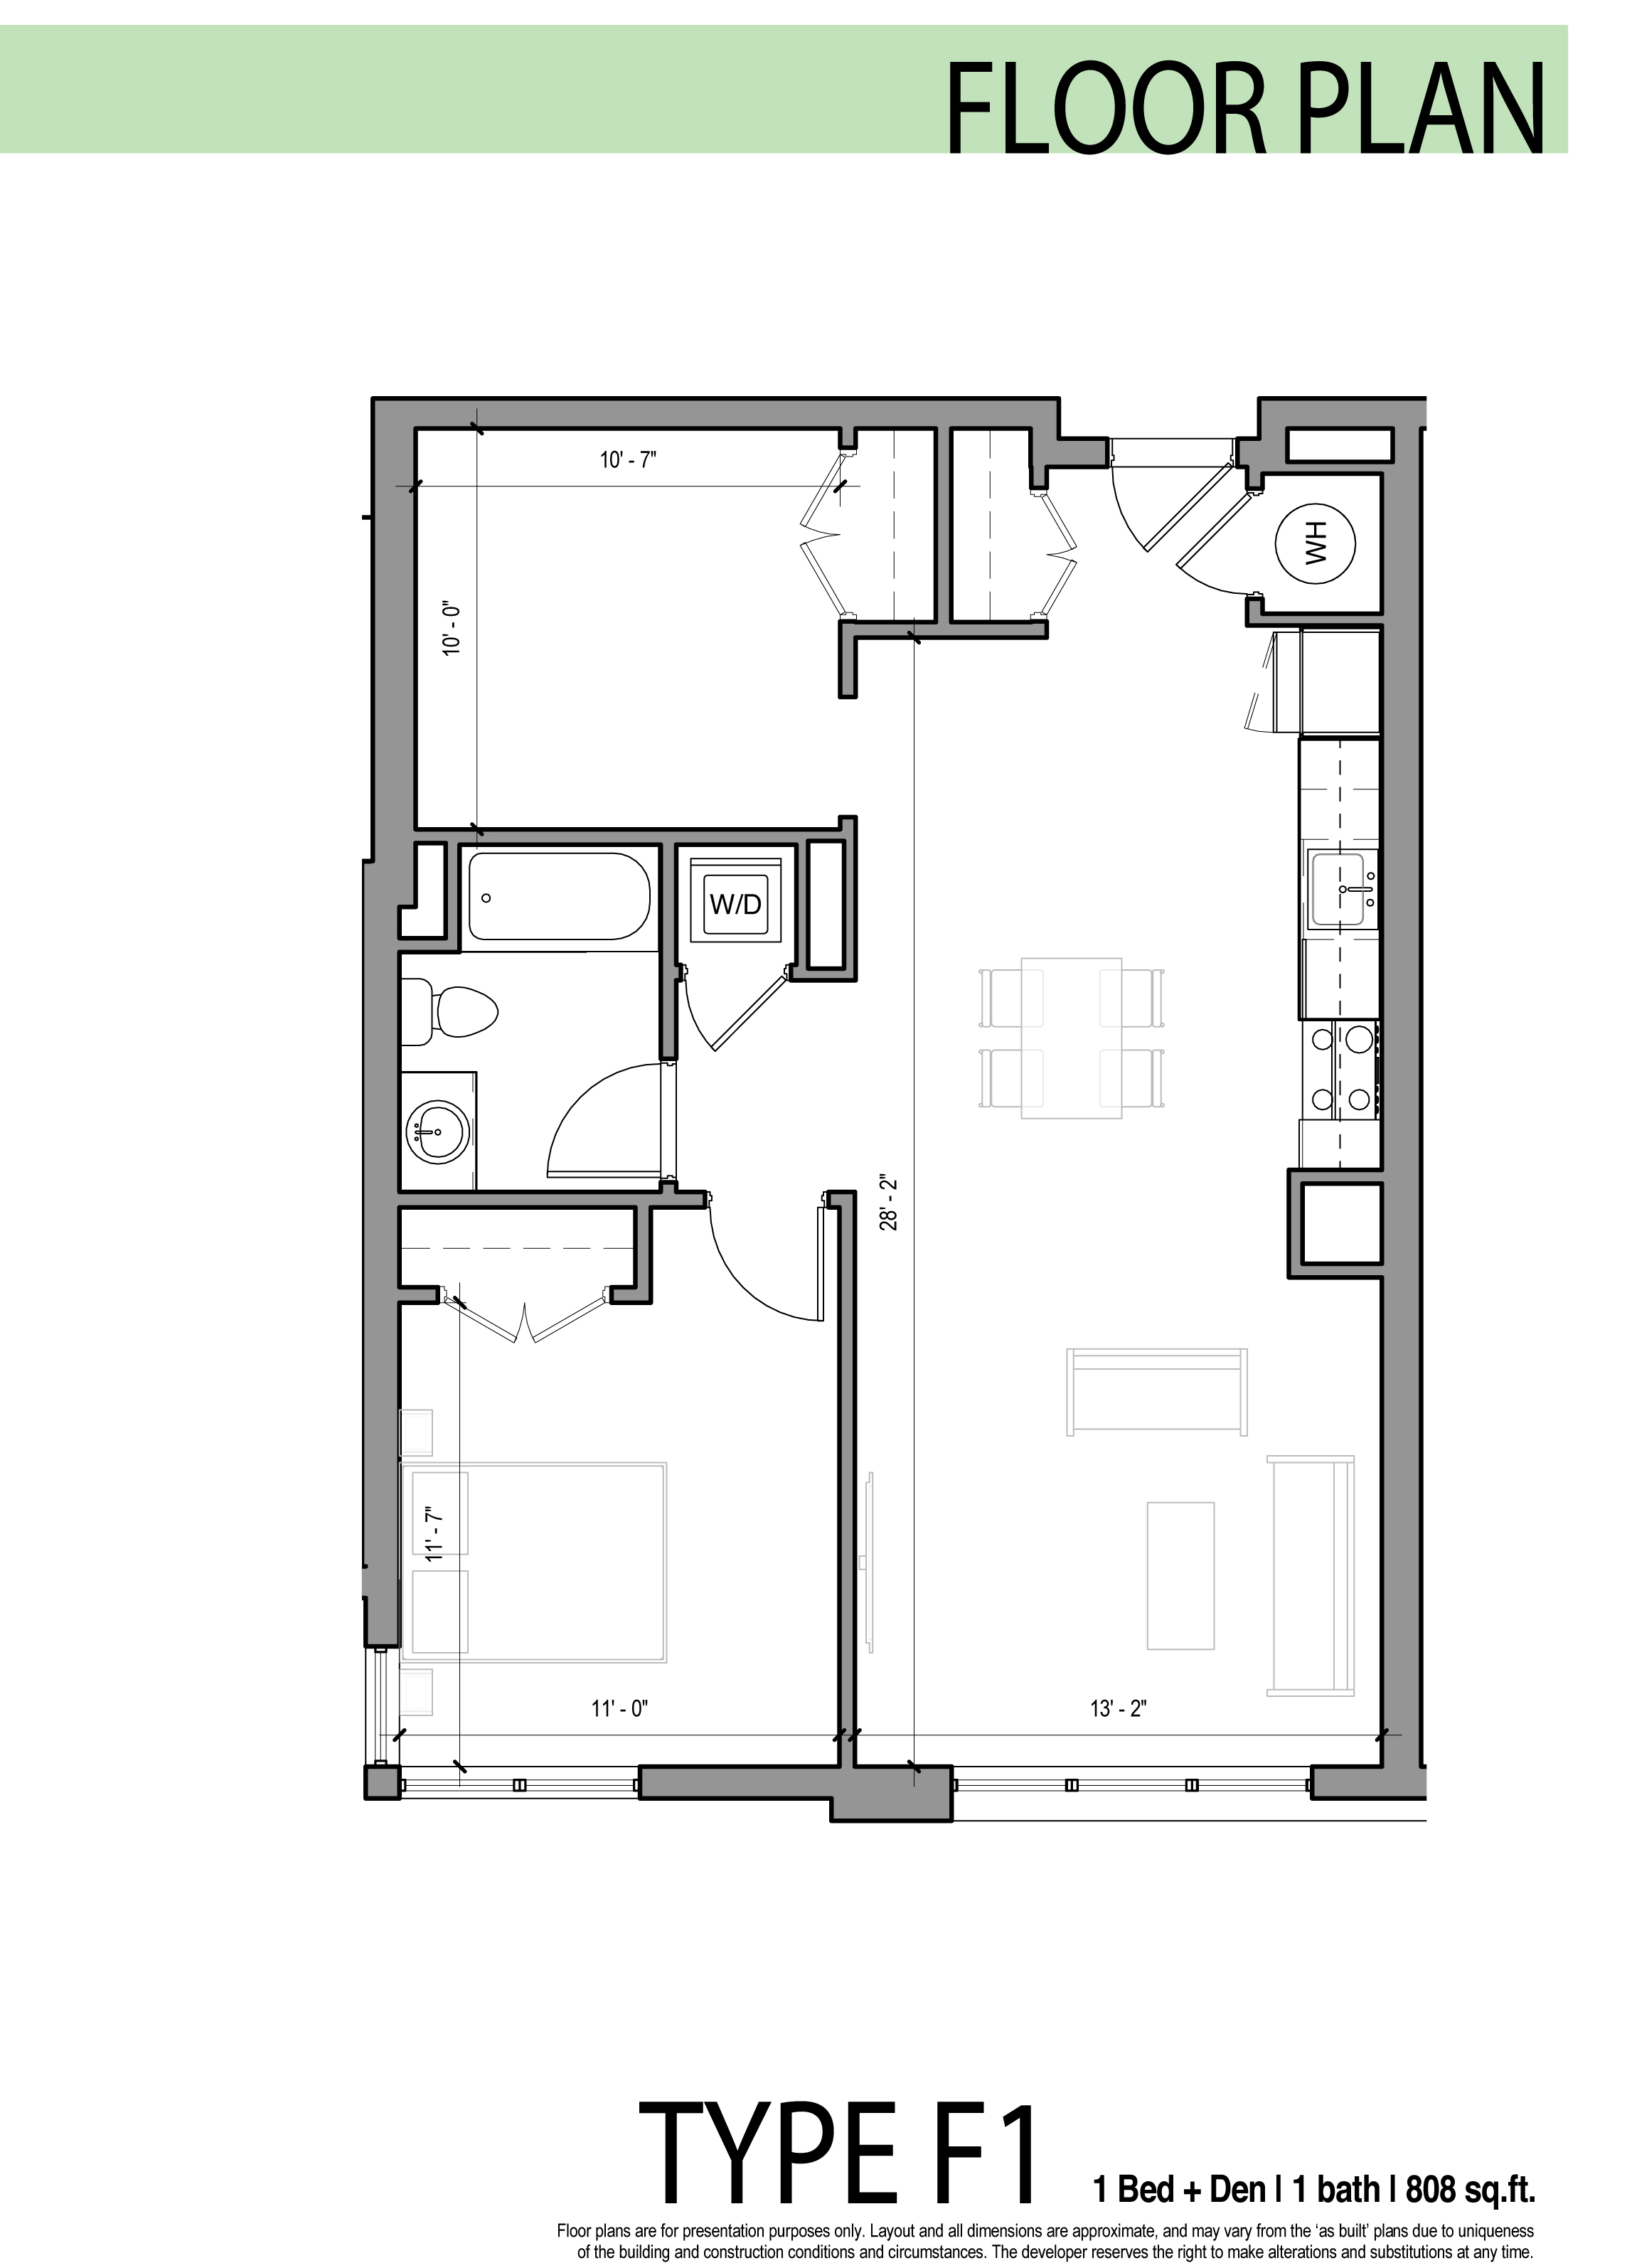 Edge allston floor plans for 1 bedroom apartment layout